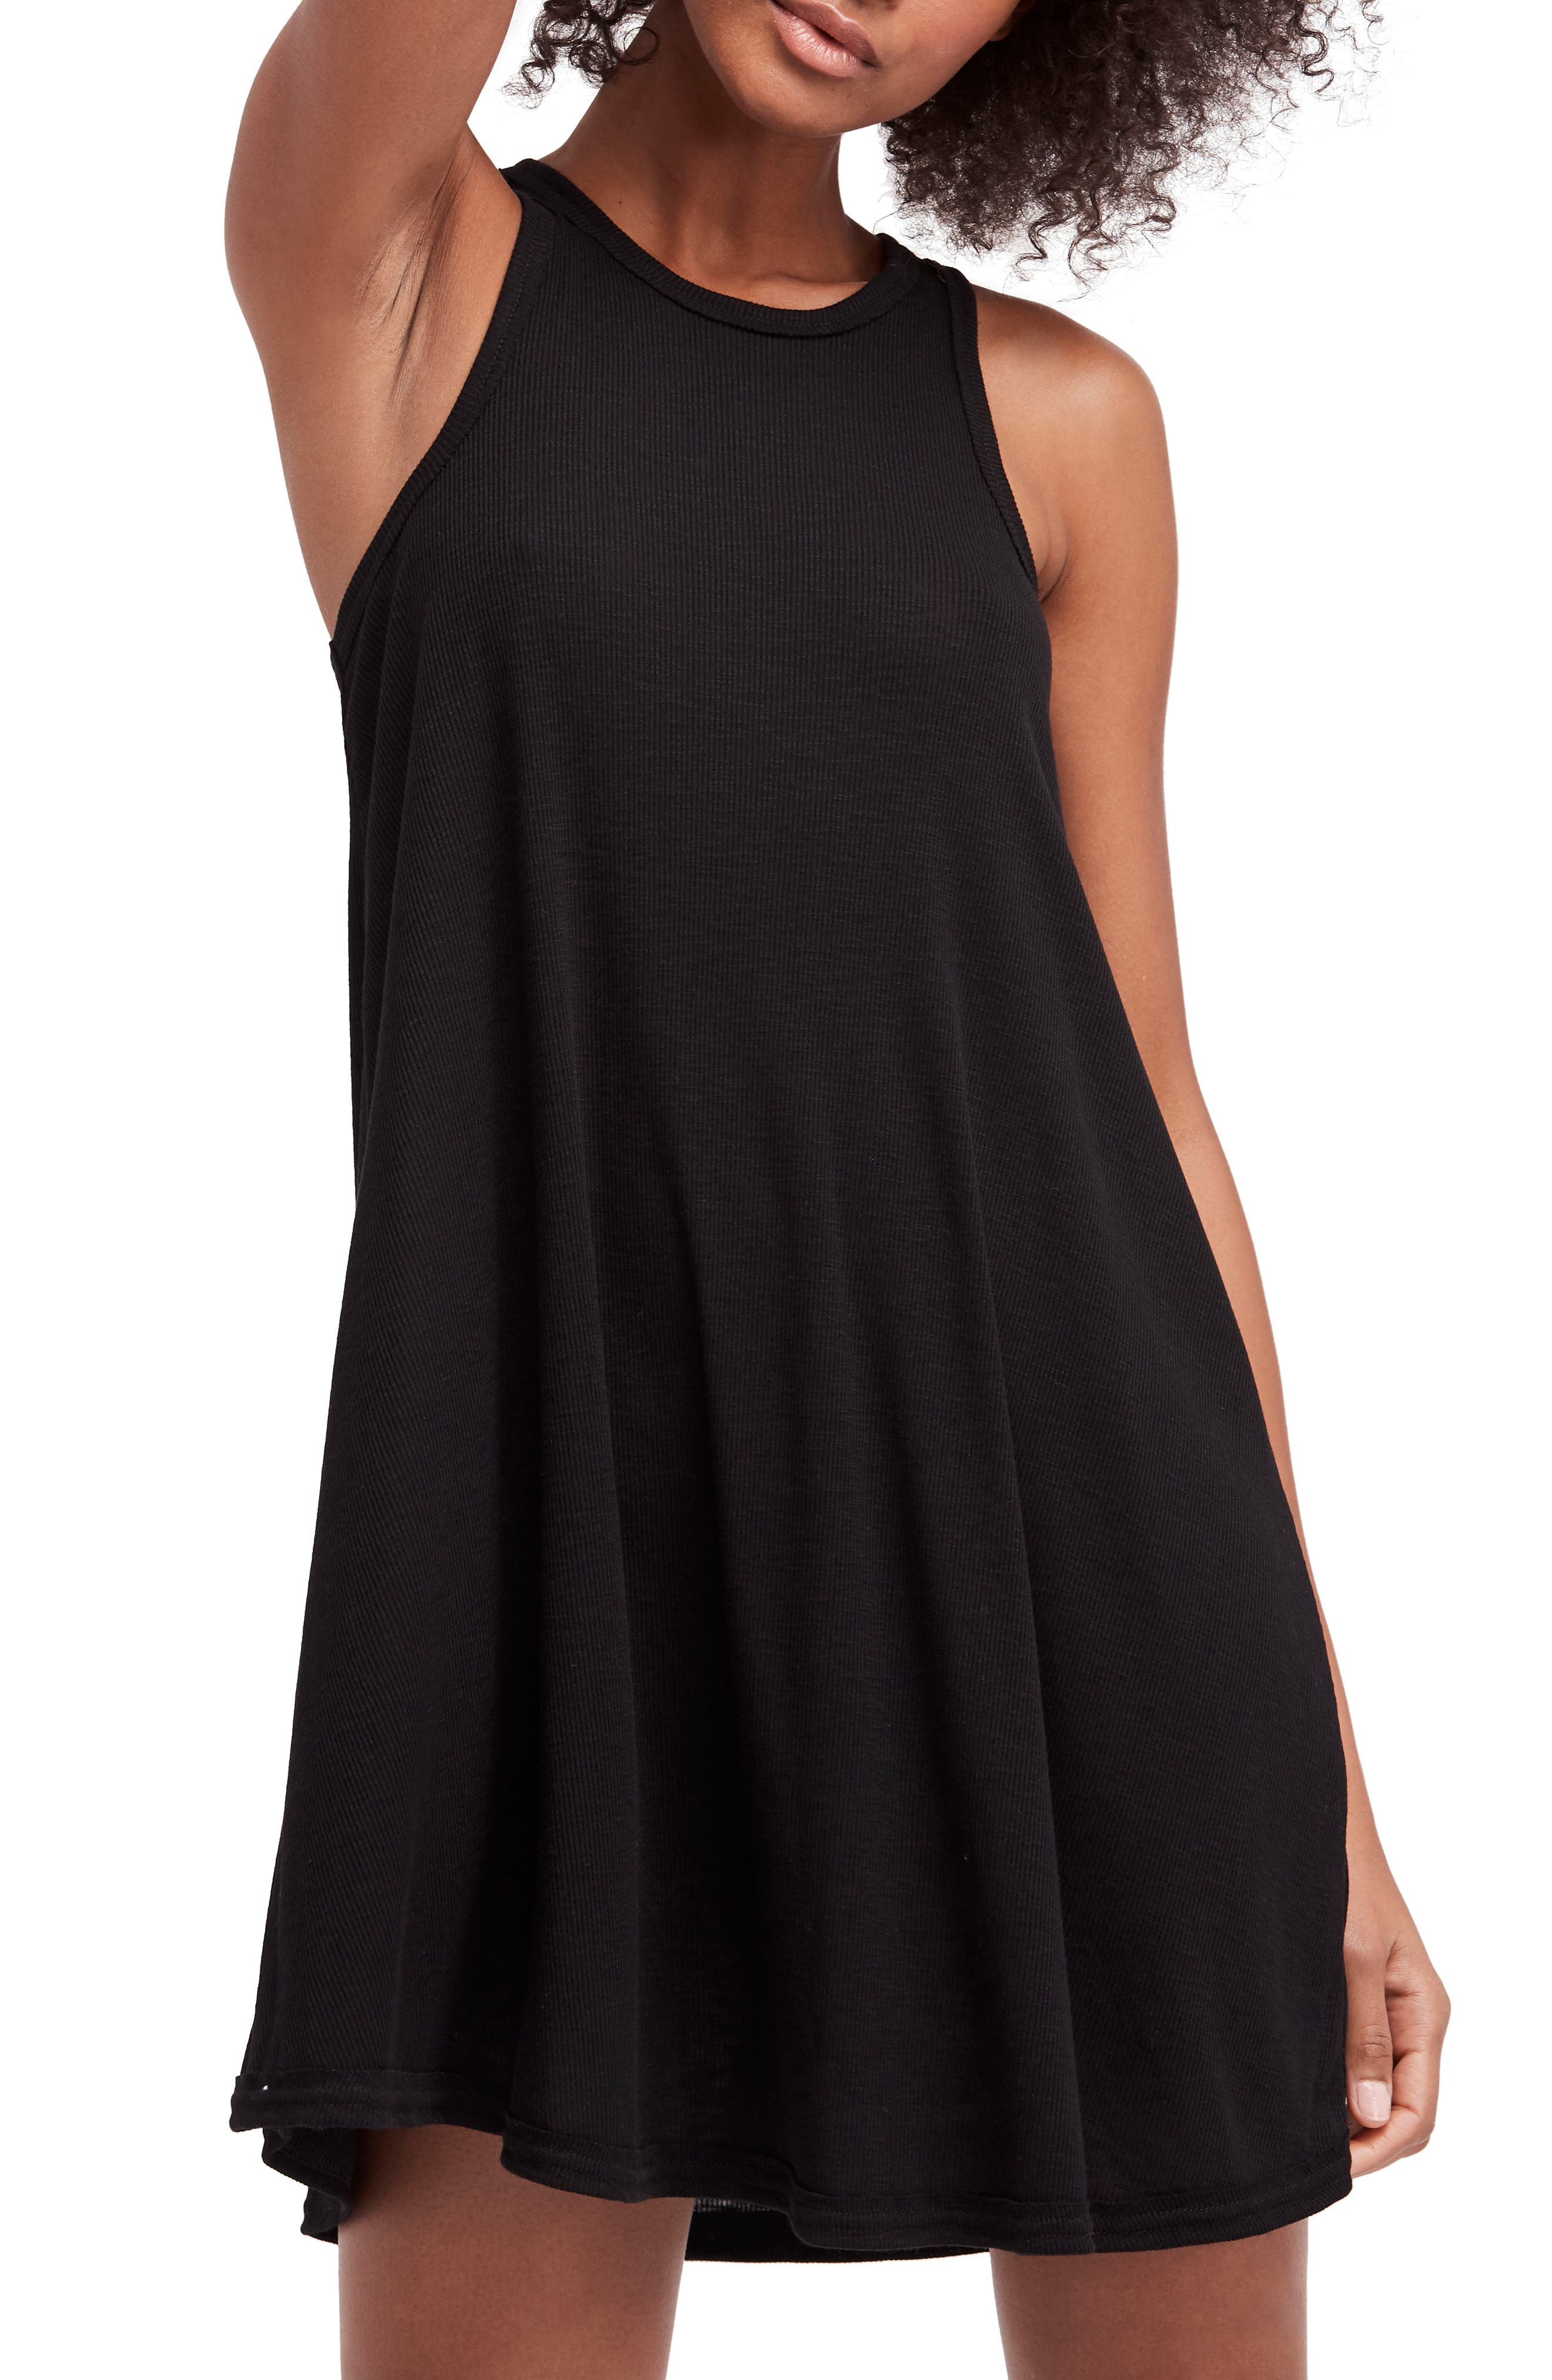 LA Nite Tank Dress,                             Alternate thumbnail 5, color,                             001